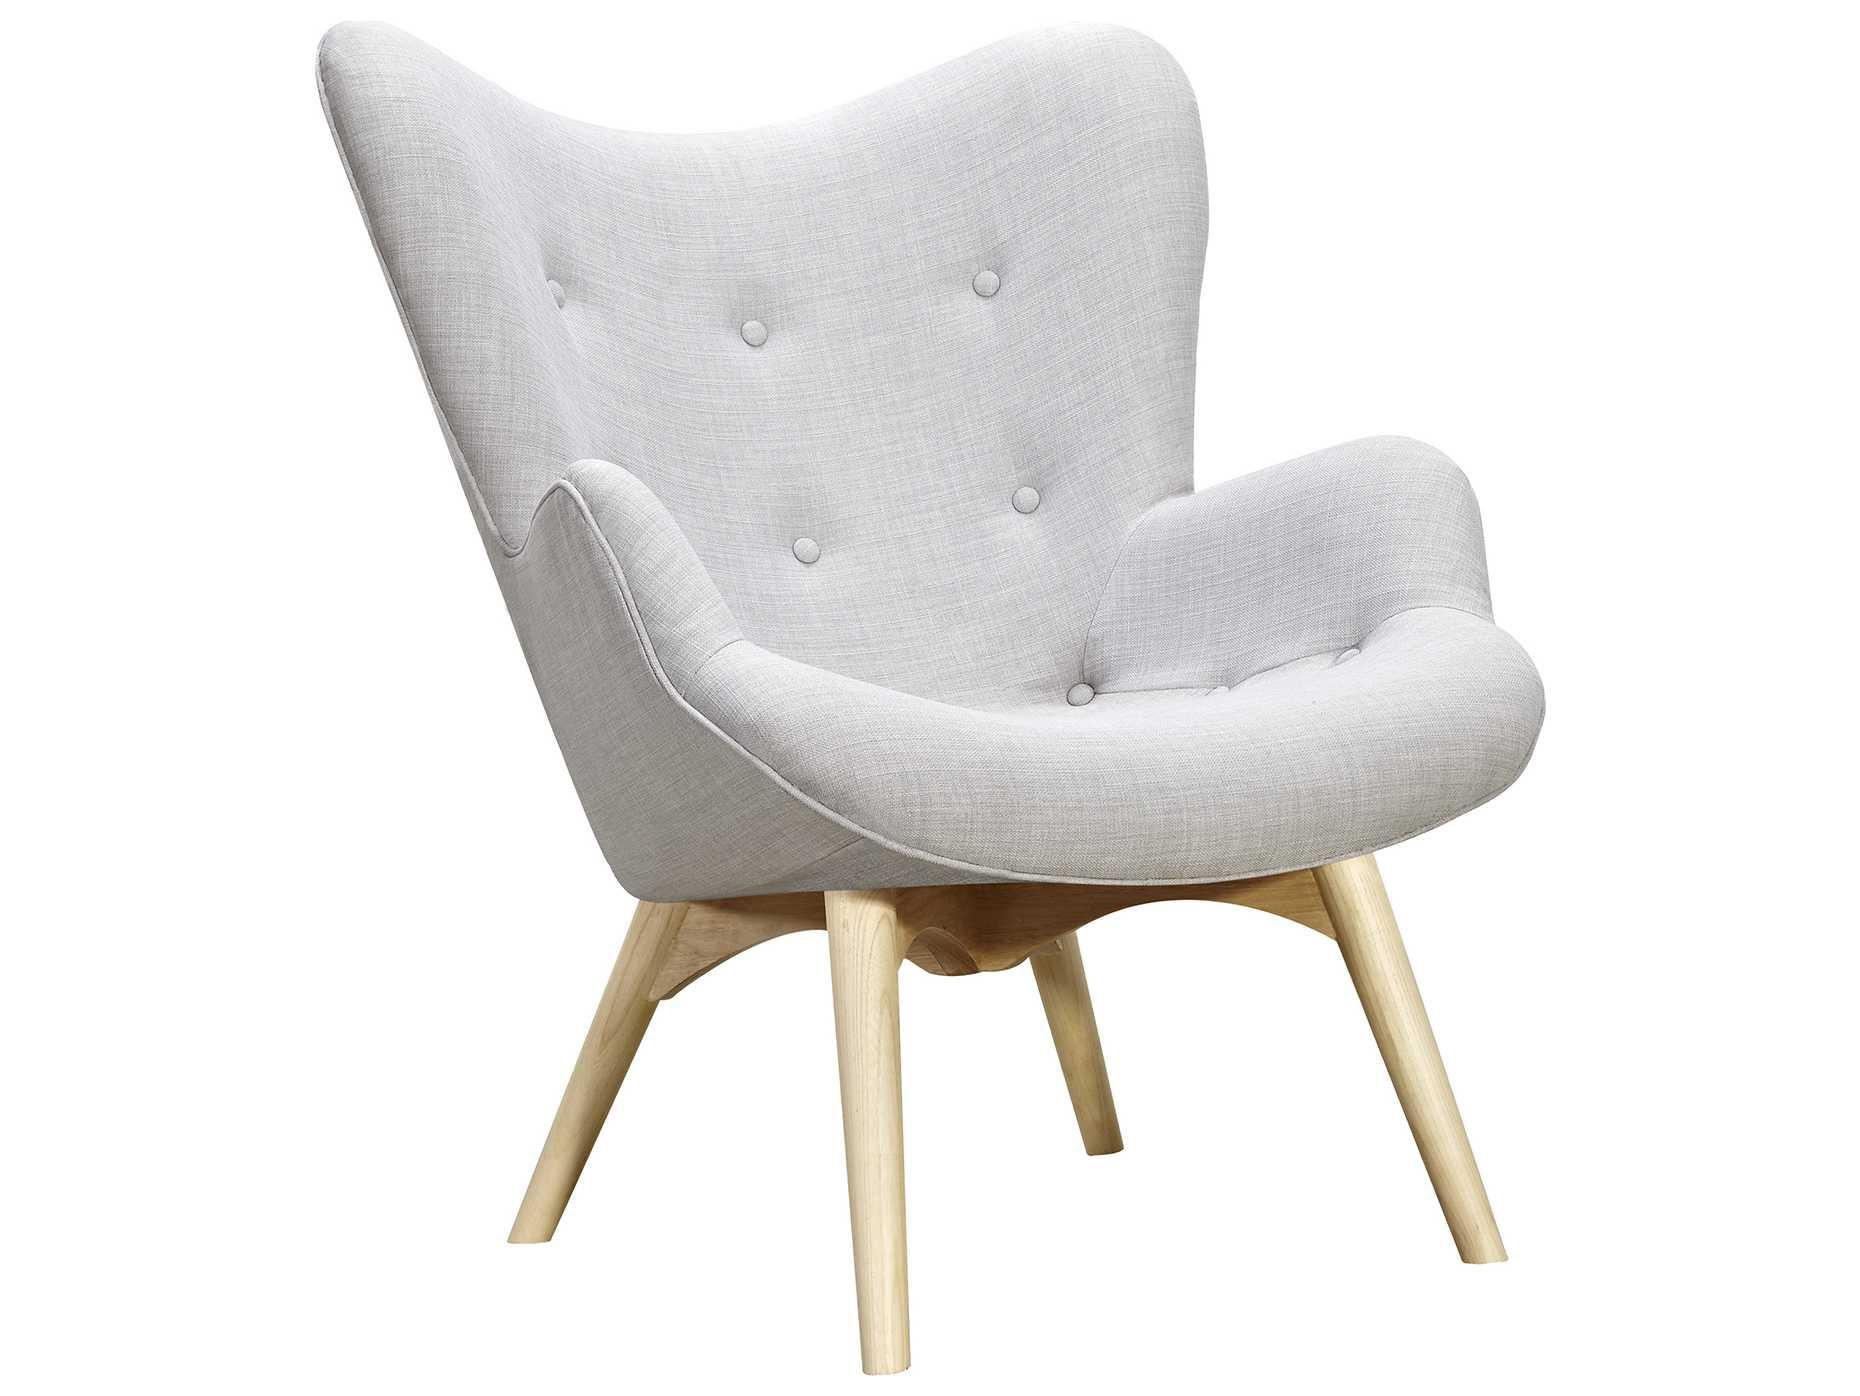 Nyekoncept Aiden Glacier White Accent Chair & Ottoman With Natural Inside Aidan Ii Swivel Accent Chairs (Photo 19 of 20)